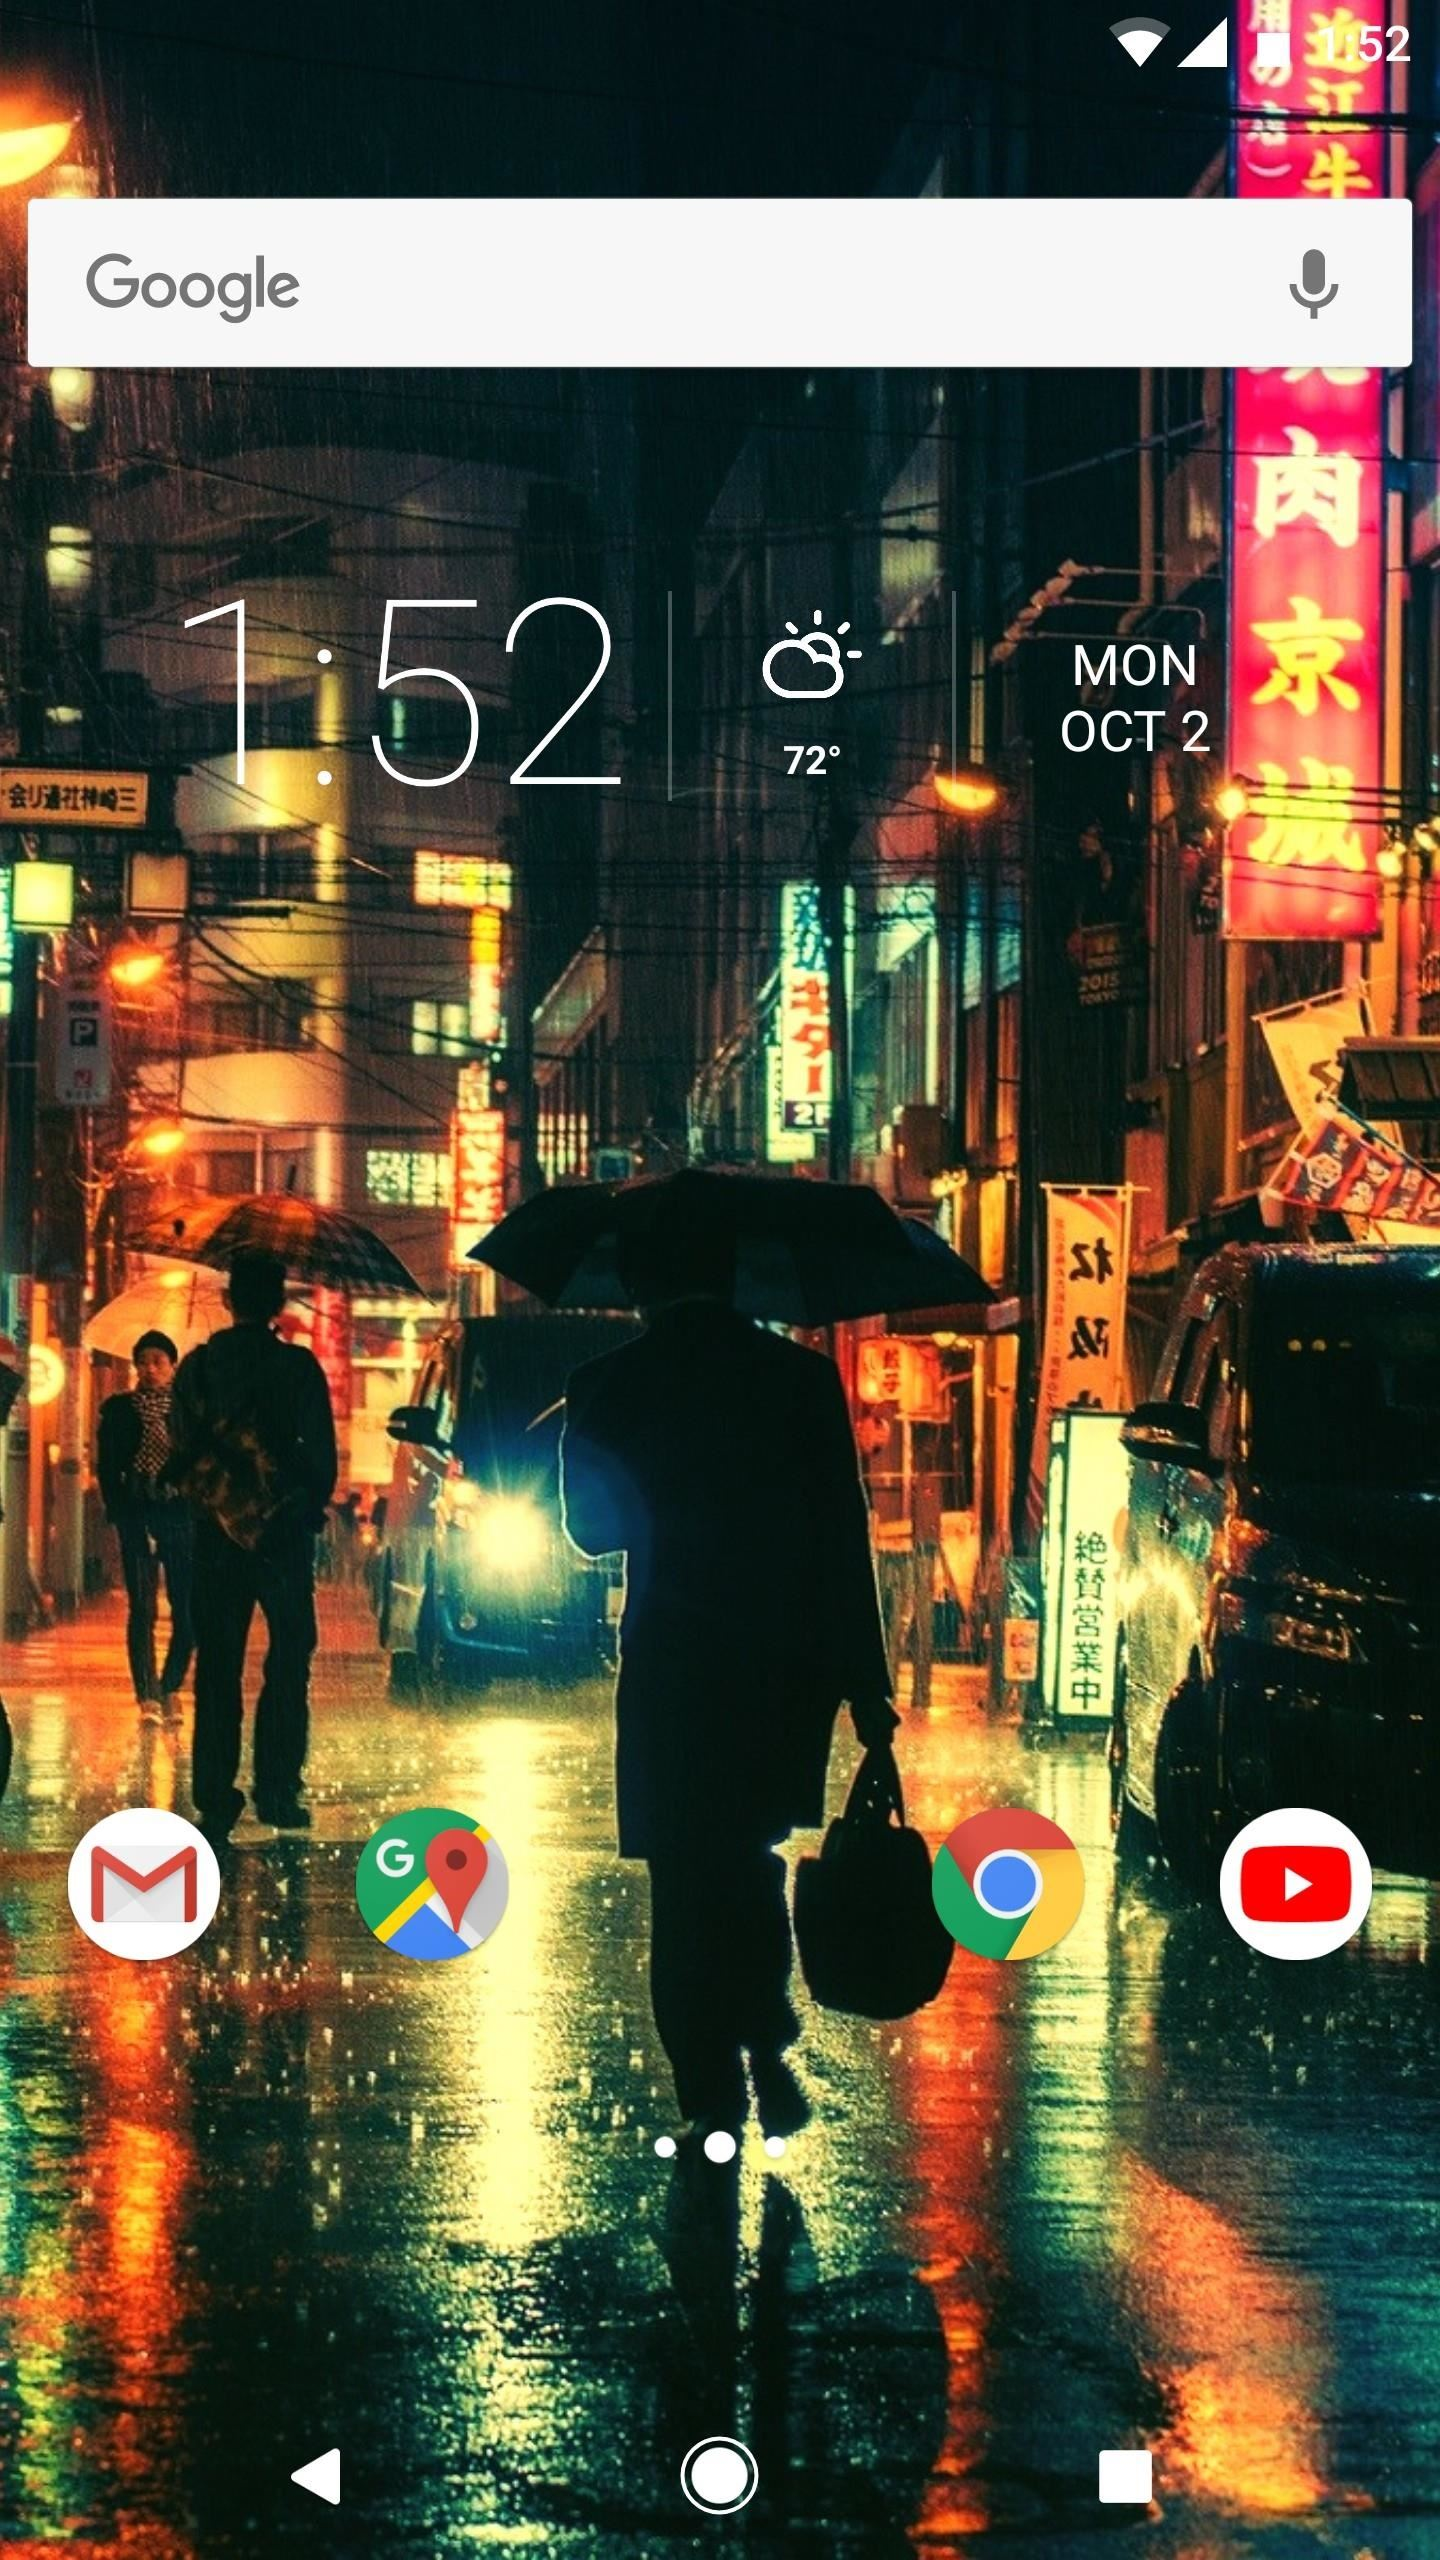 How to Get the Pixel 2's New Google Search Widget in the Dock Using Nova Launcher